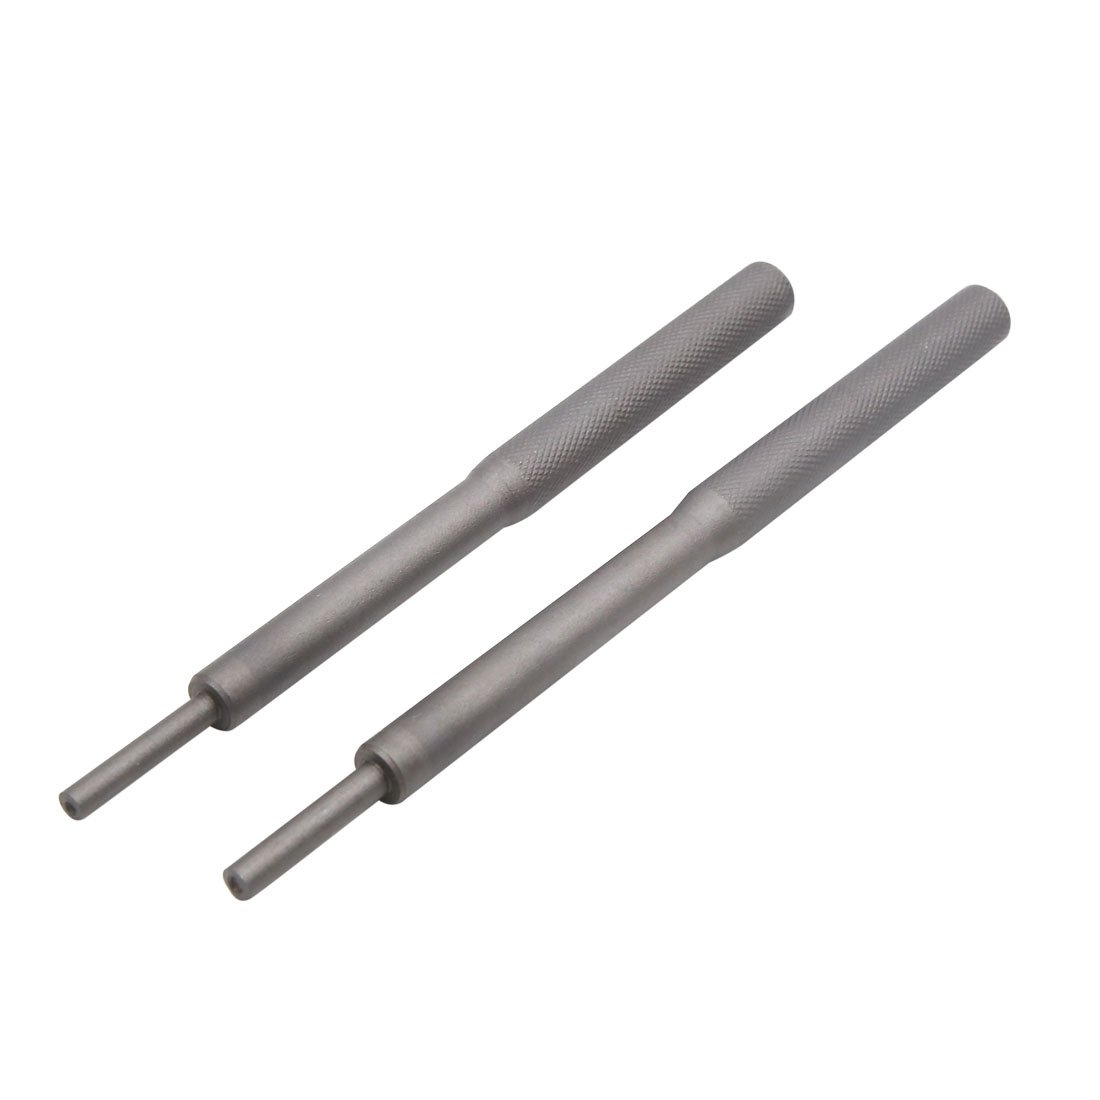 uxcell 2pcs Universal Metal Valve Guide Remover Grinding Stick Tool Dark Gray for Car